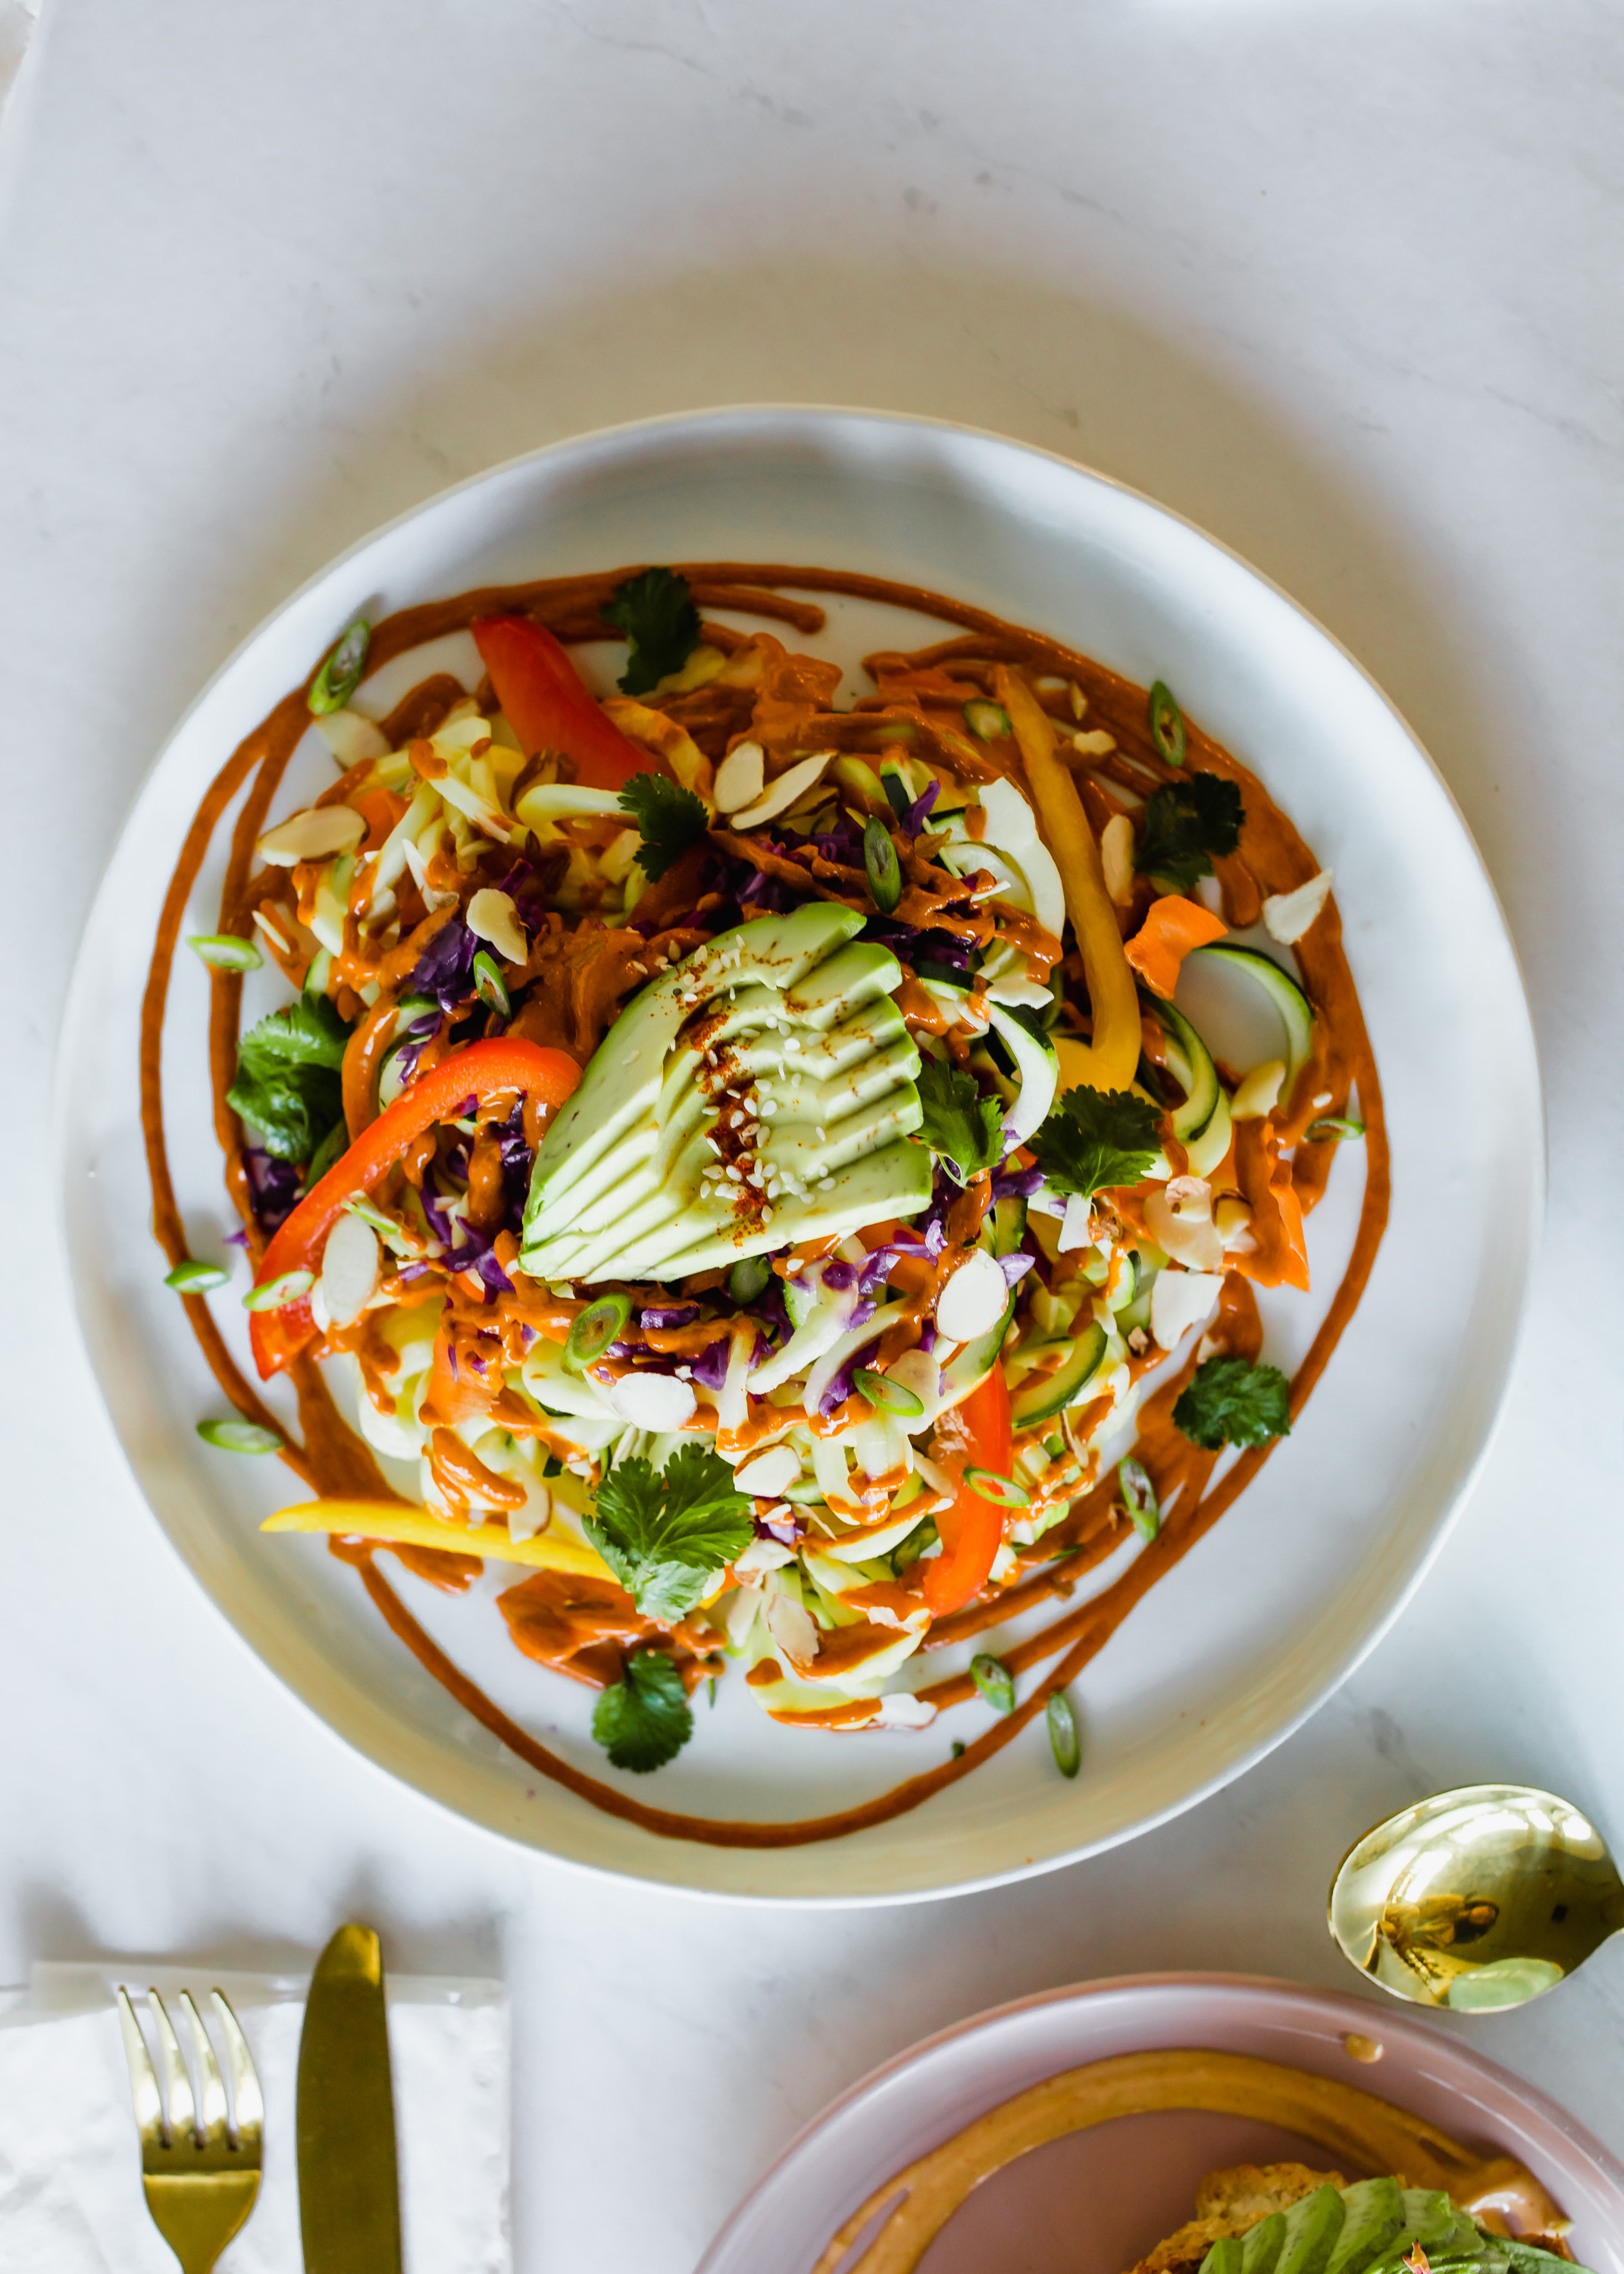 Fully Raw Pad Thai (Cold) - Made up of zucchini noodles, pickled carrots, raw sauerkraut, avocado, bell pepper, cilantro and topped with an incredible sauce. A plant based twist on a Thai classic, Wholism fully delivers on this raw dish.